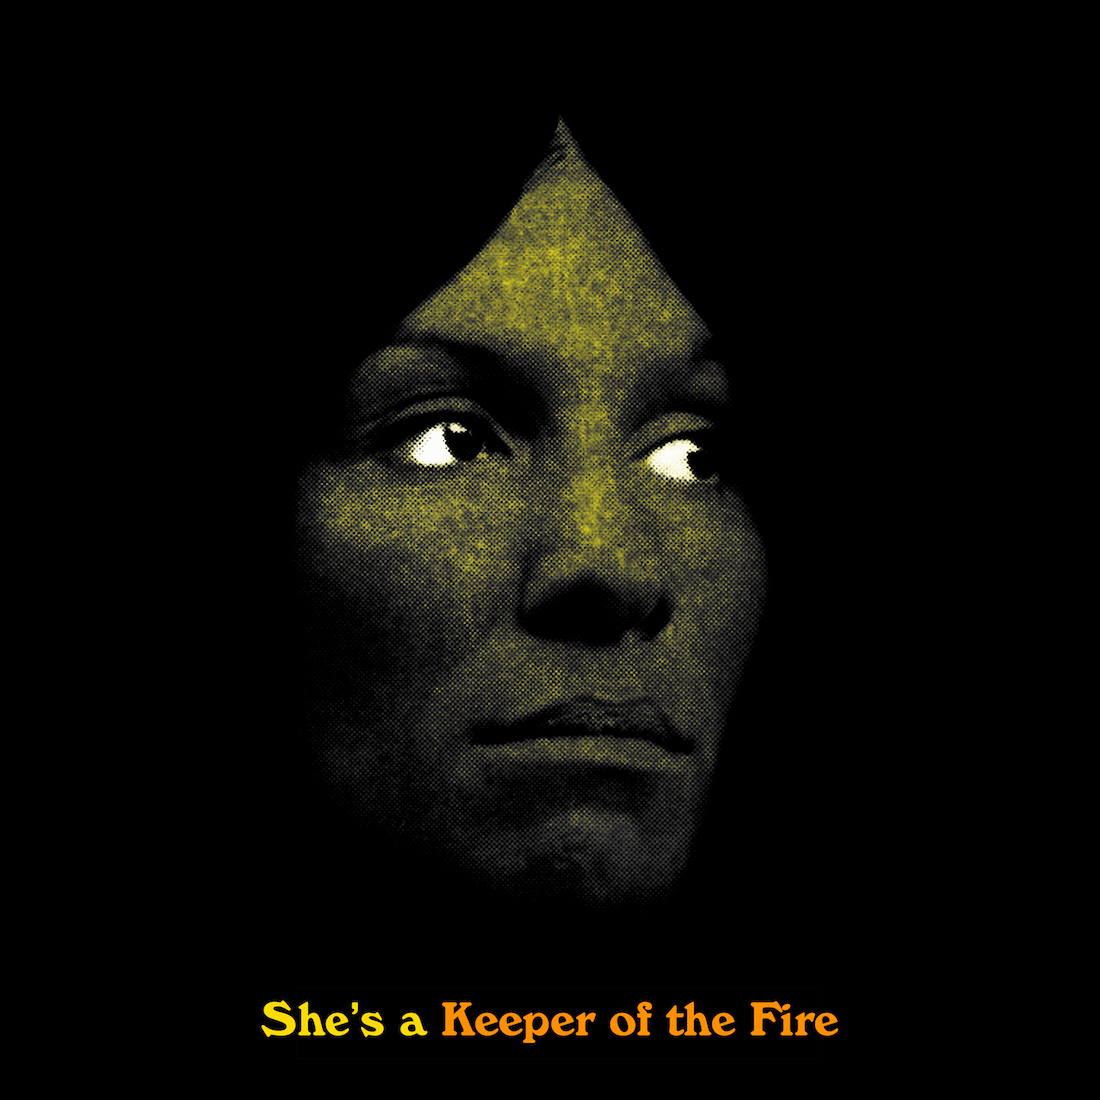 She's A Keeper Of The Fire - Buffy Sainte-Marie (A Medley...)